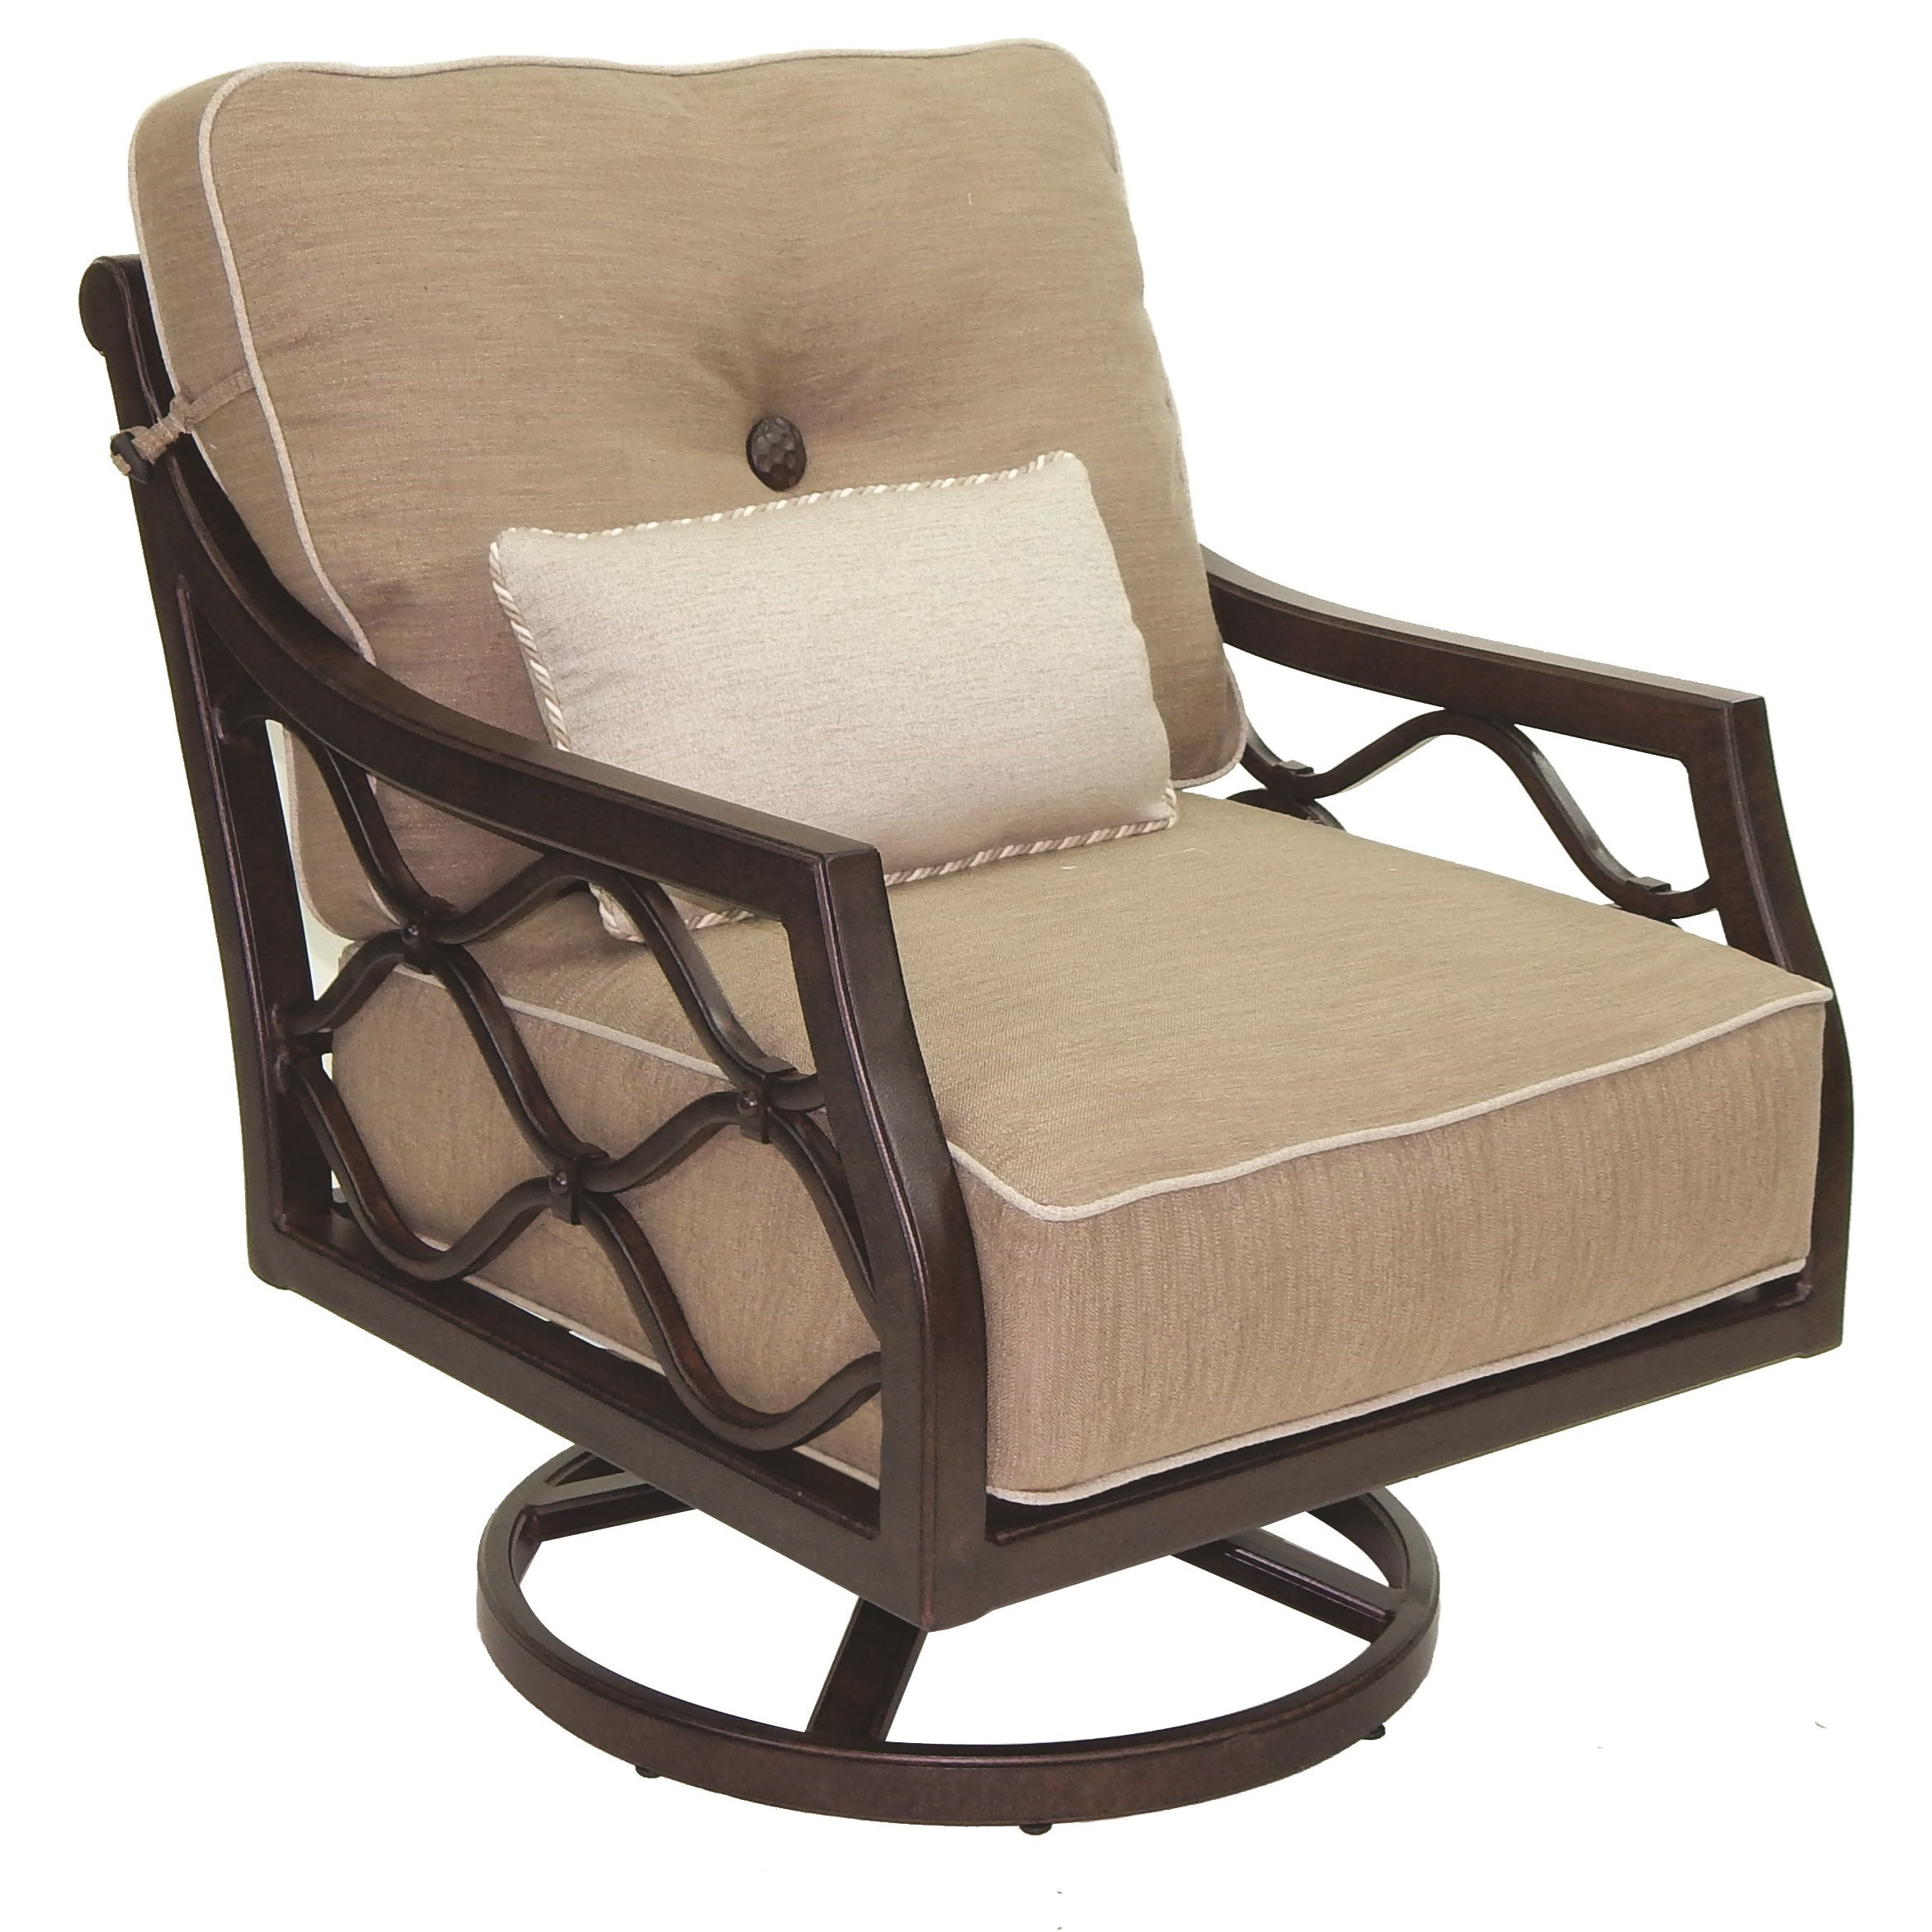 Villa Bianca Cushioned Lounge Swivel Rocker w/ One Kidney by Castelle by Pride Family Brands at Baer's Furniture